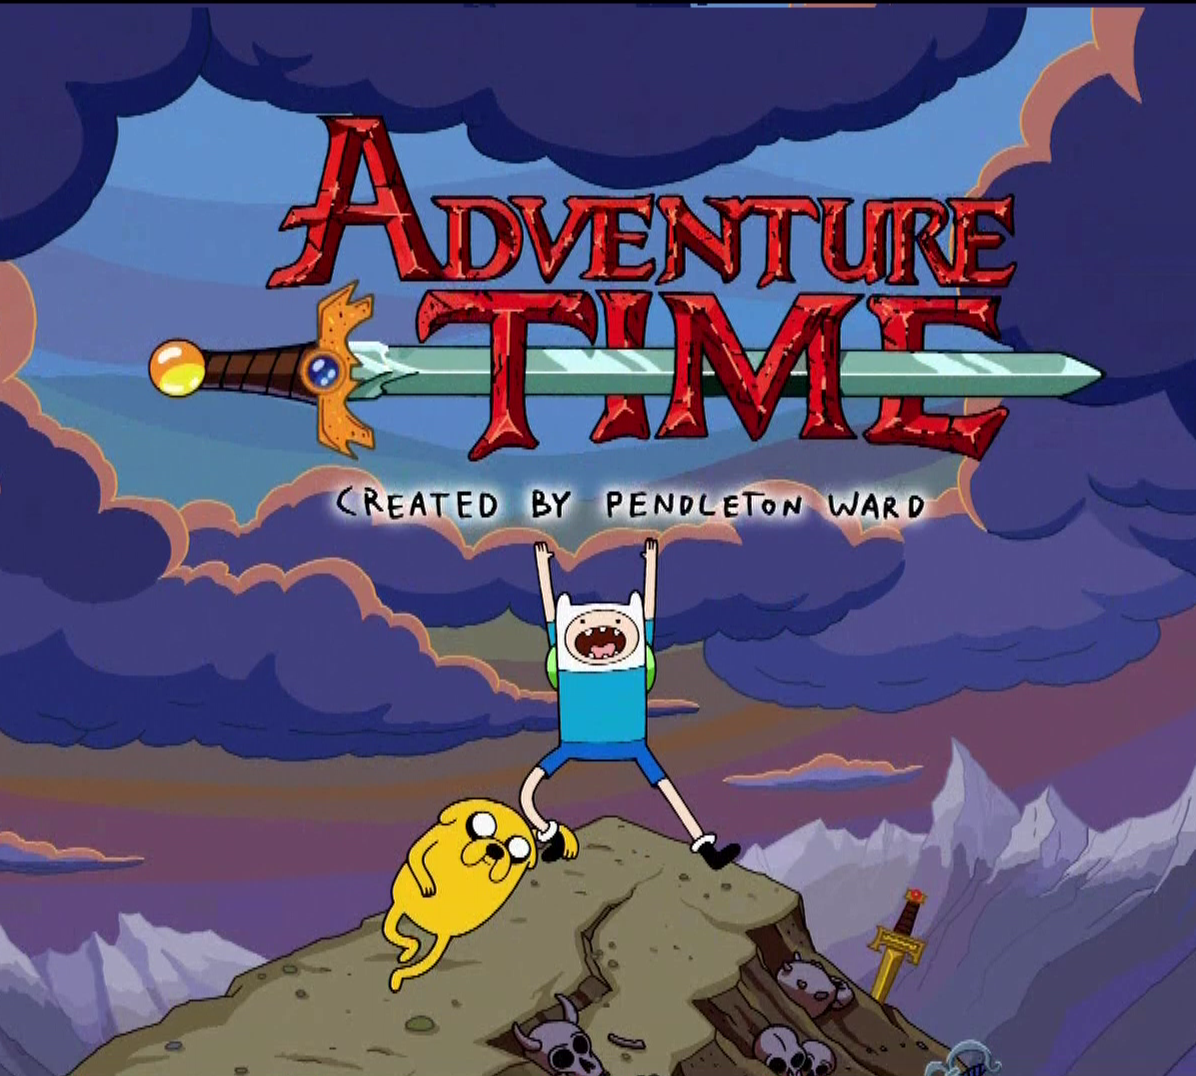 Adventure Time Cover Art Wallpaper for Phones and Tablets 1196x1076